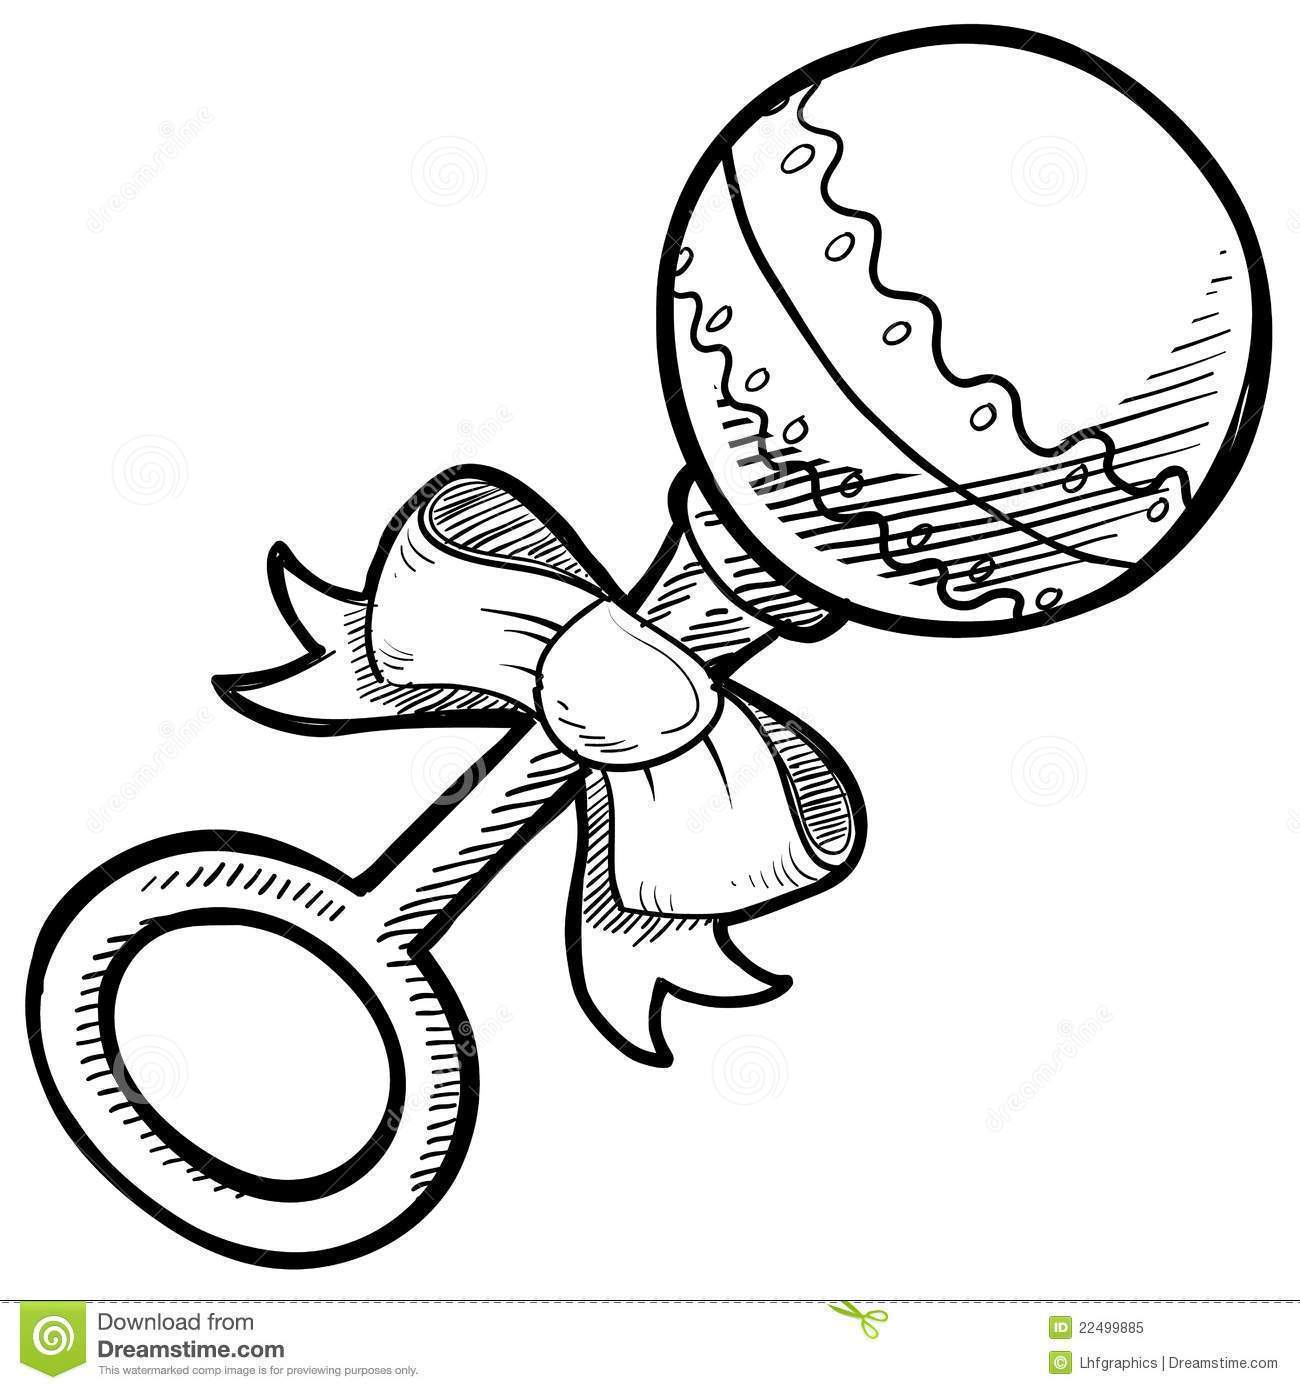 Black white baby rattle clipart royalty free library Baby Rattle Drawing Royalty Free Stock Photo Image 22499885 Black ... royalty free library